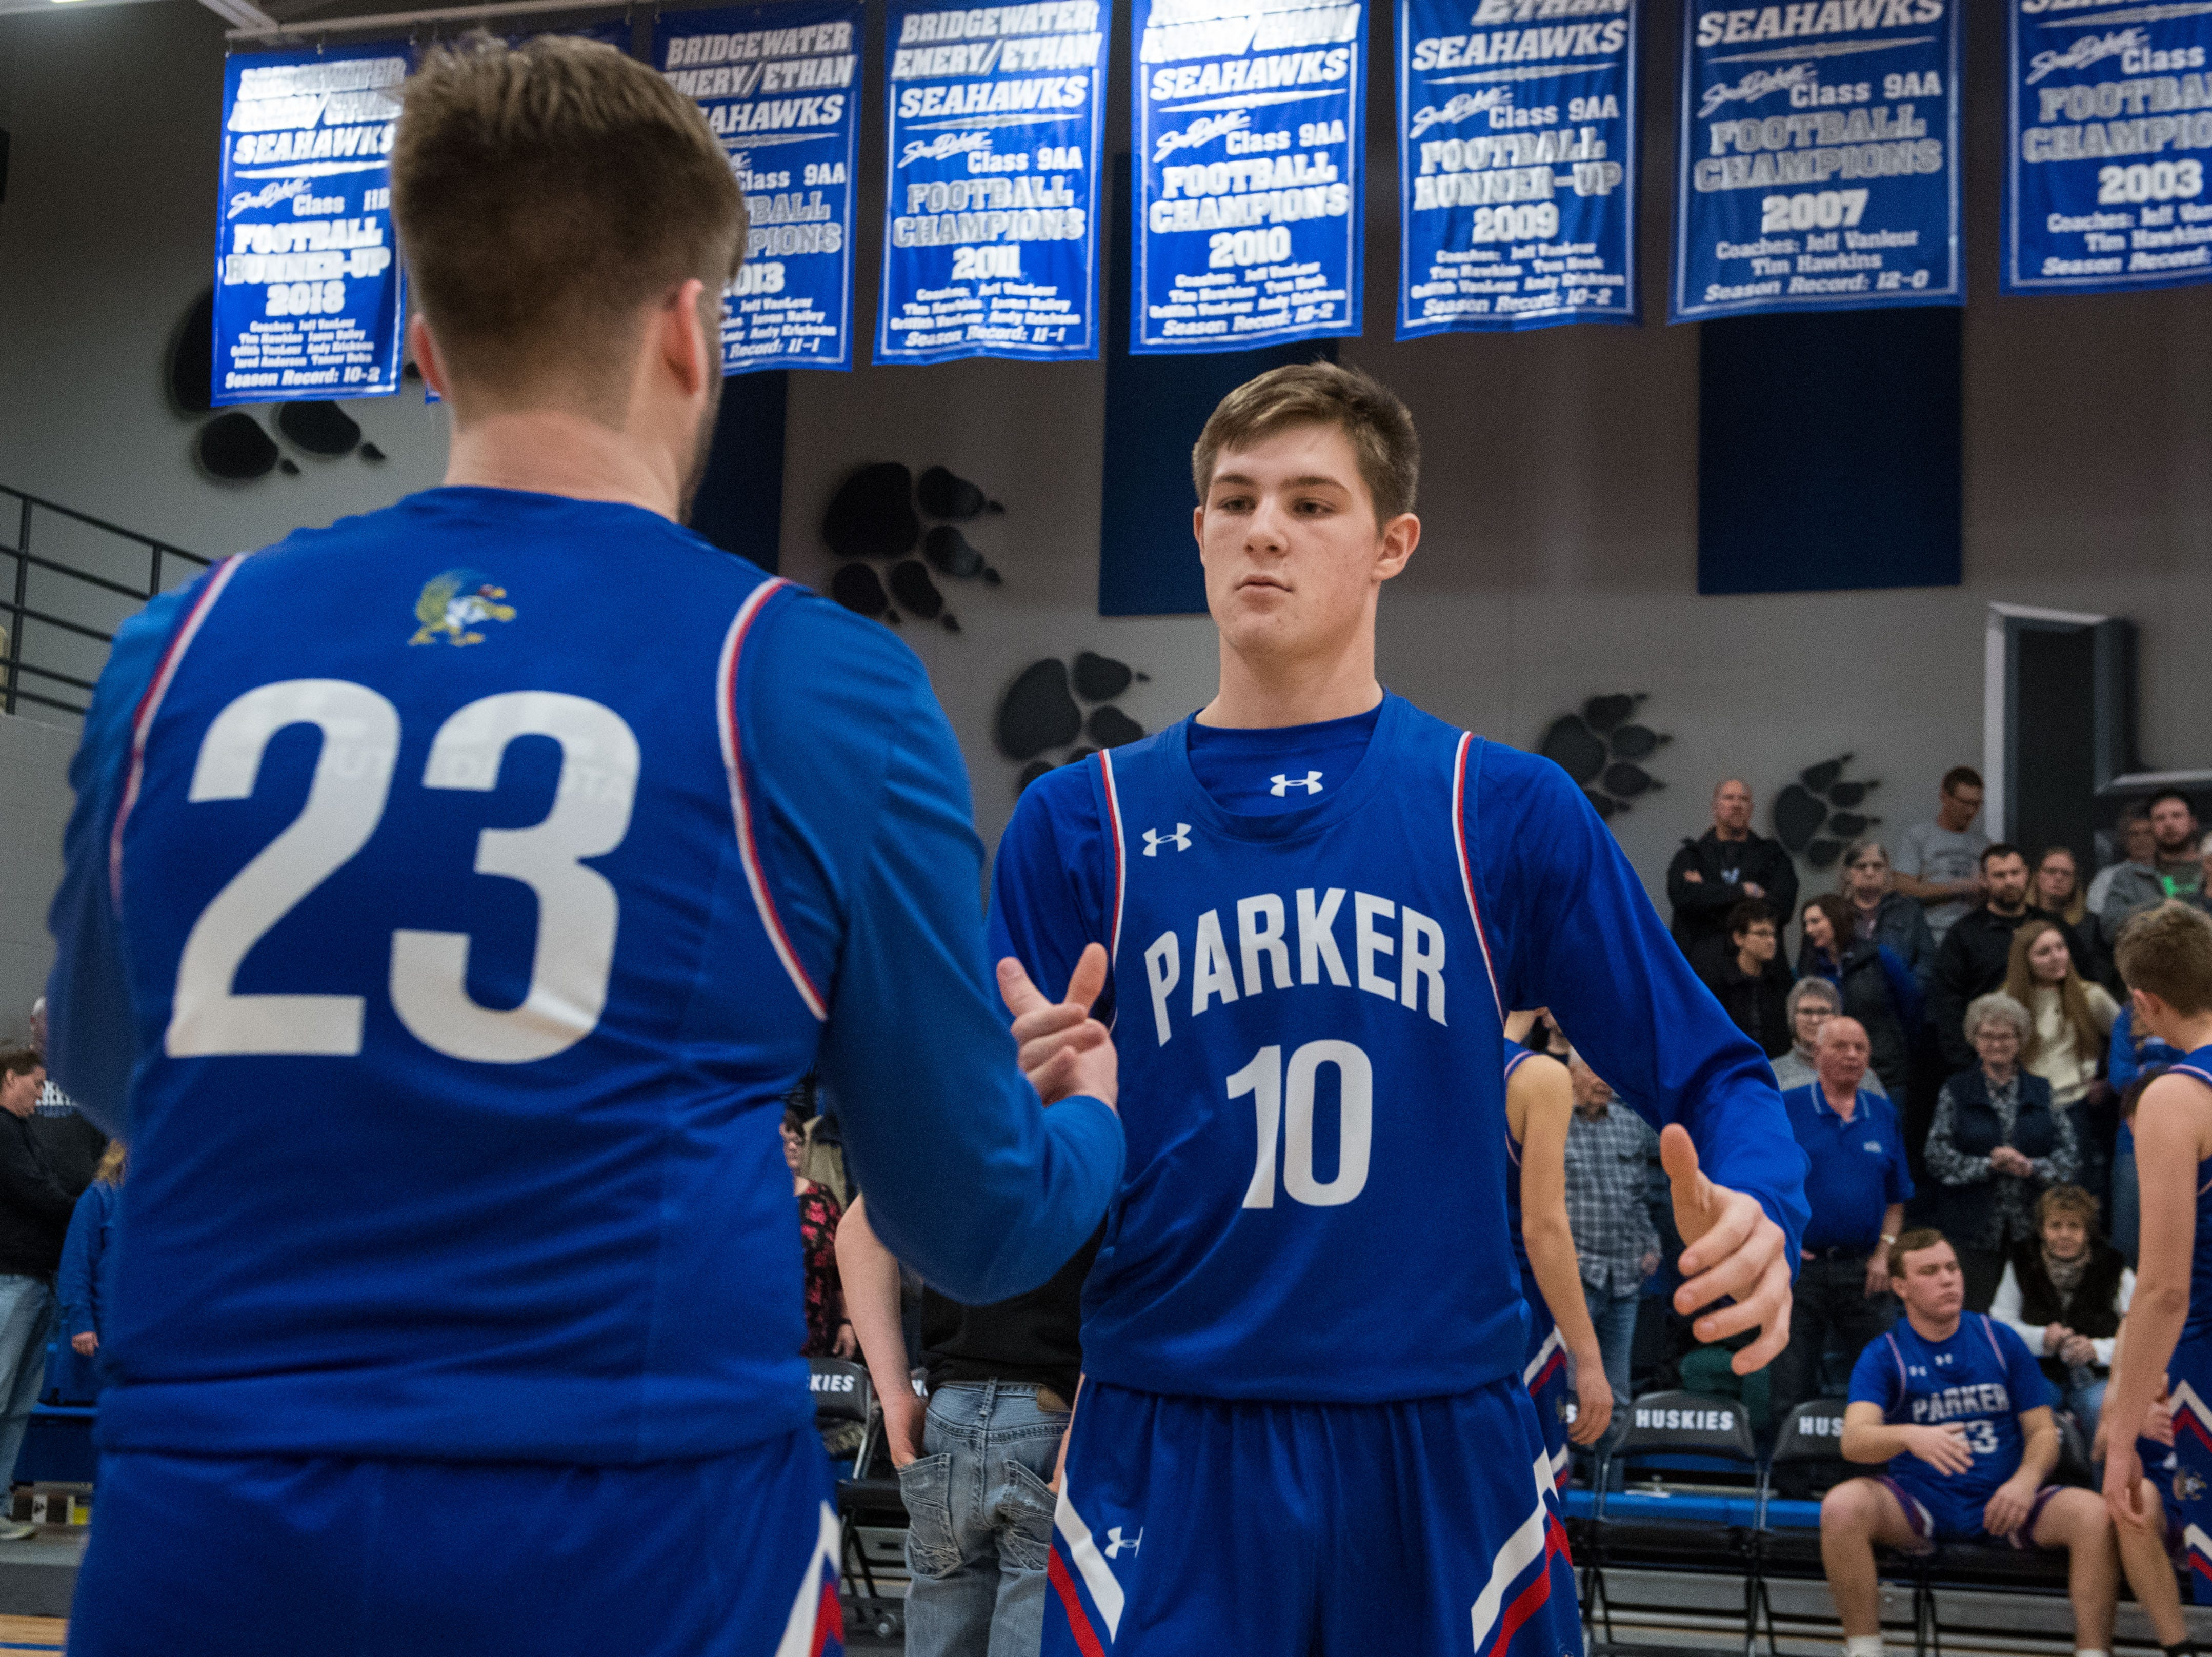 Parker's Reece Peters (10) shakes hands with Jace Bridges (23) before the game against Bridgewater Emery, Friday, Feb. 15, 2019 in Emery, S.D.